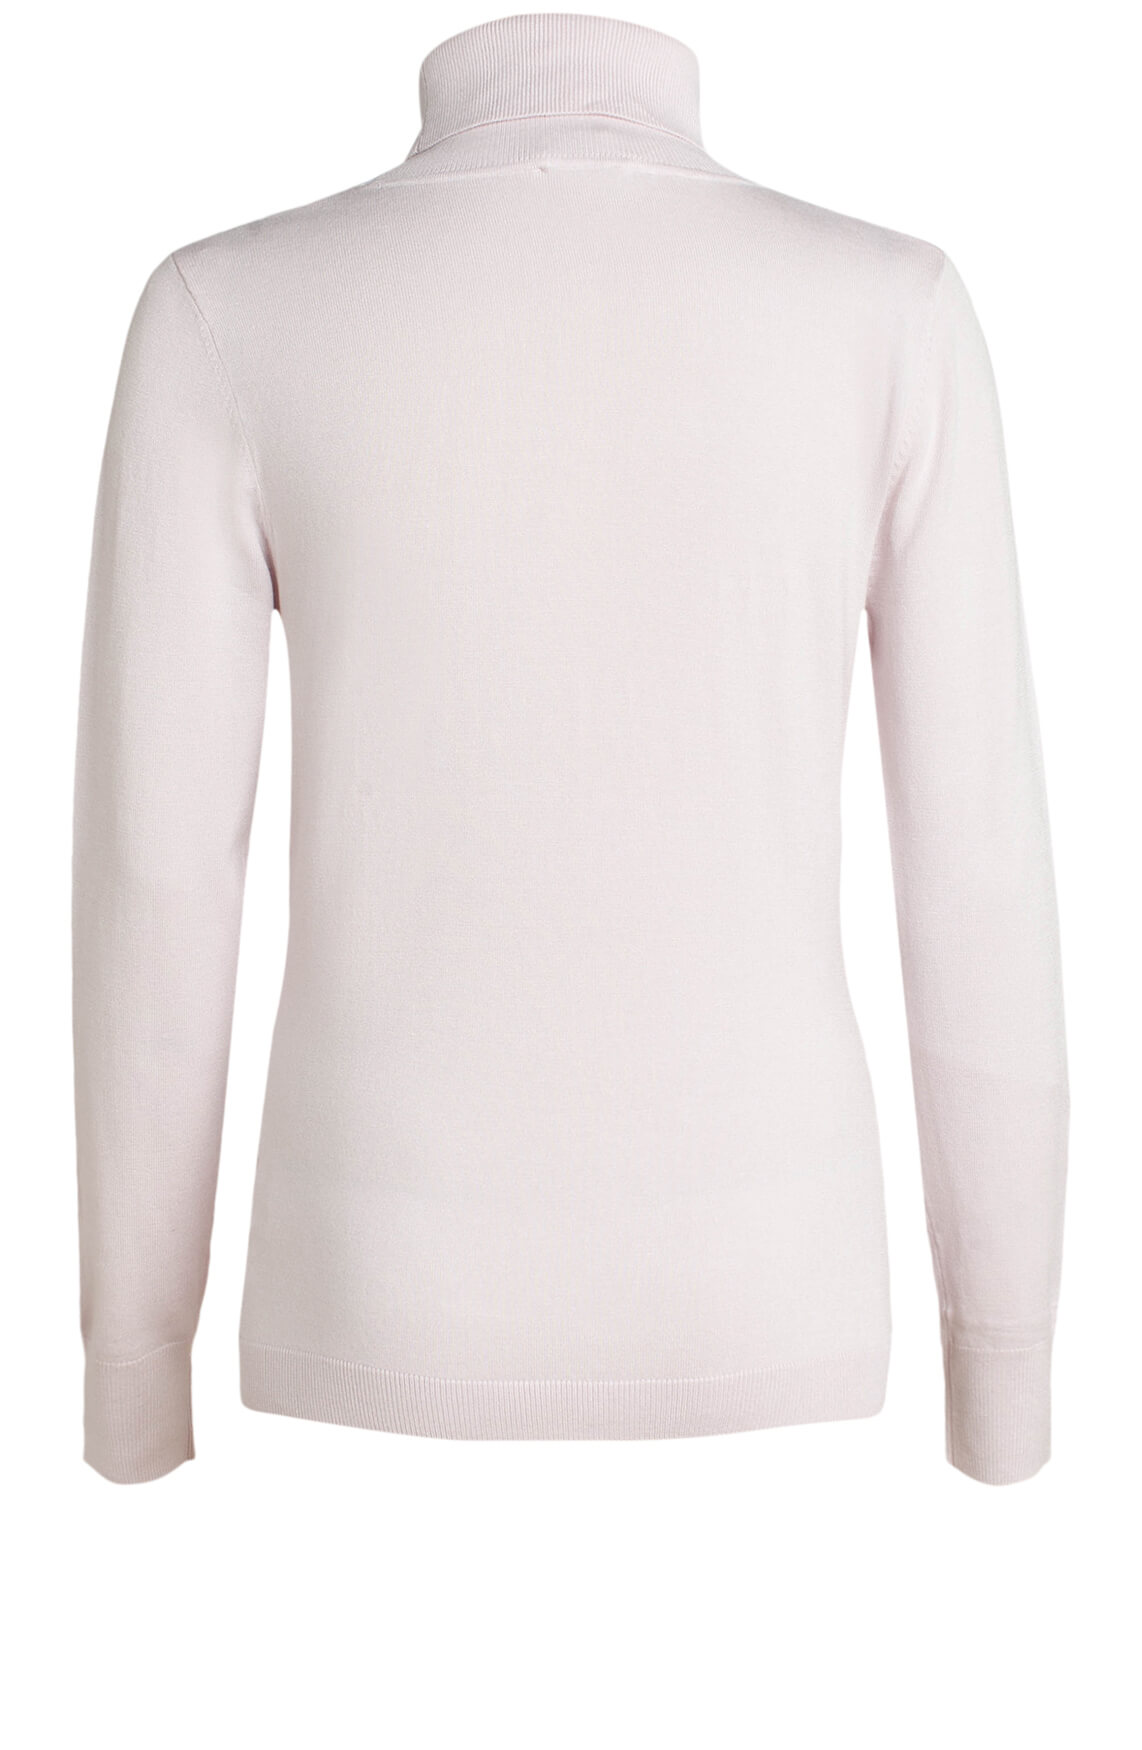 Anna Dames Pullover met col roze